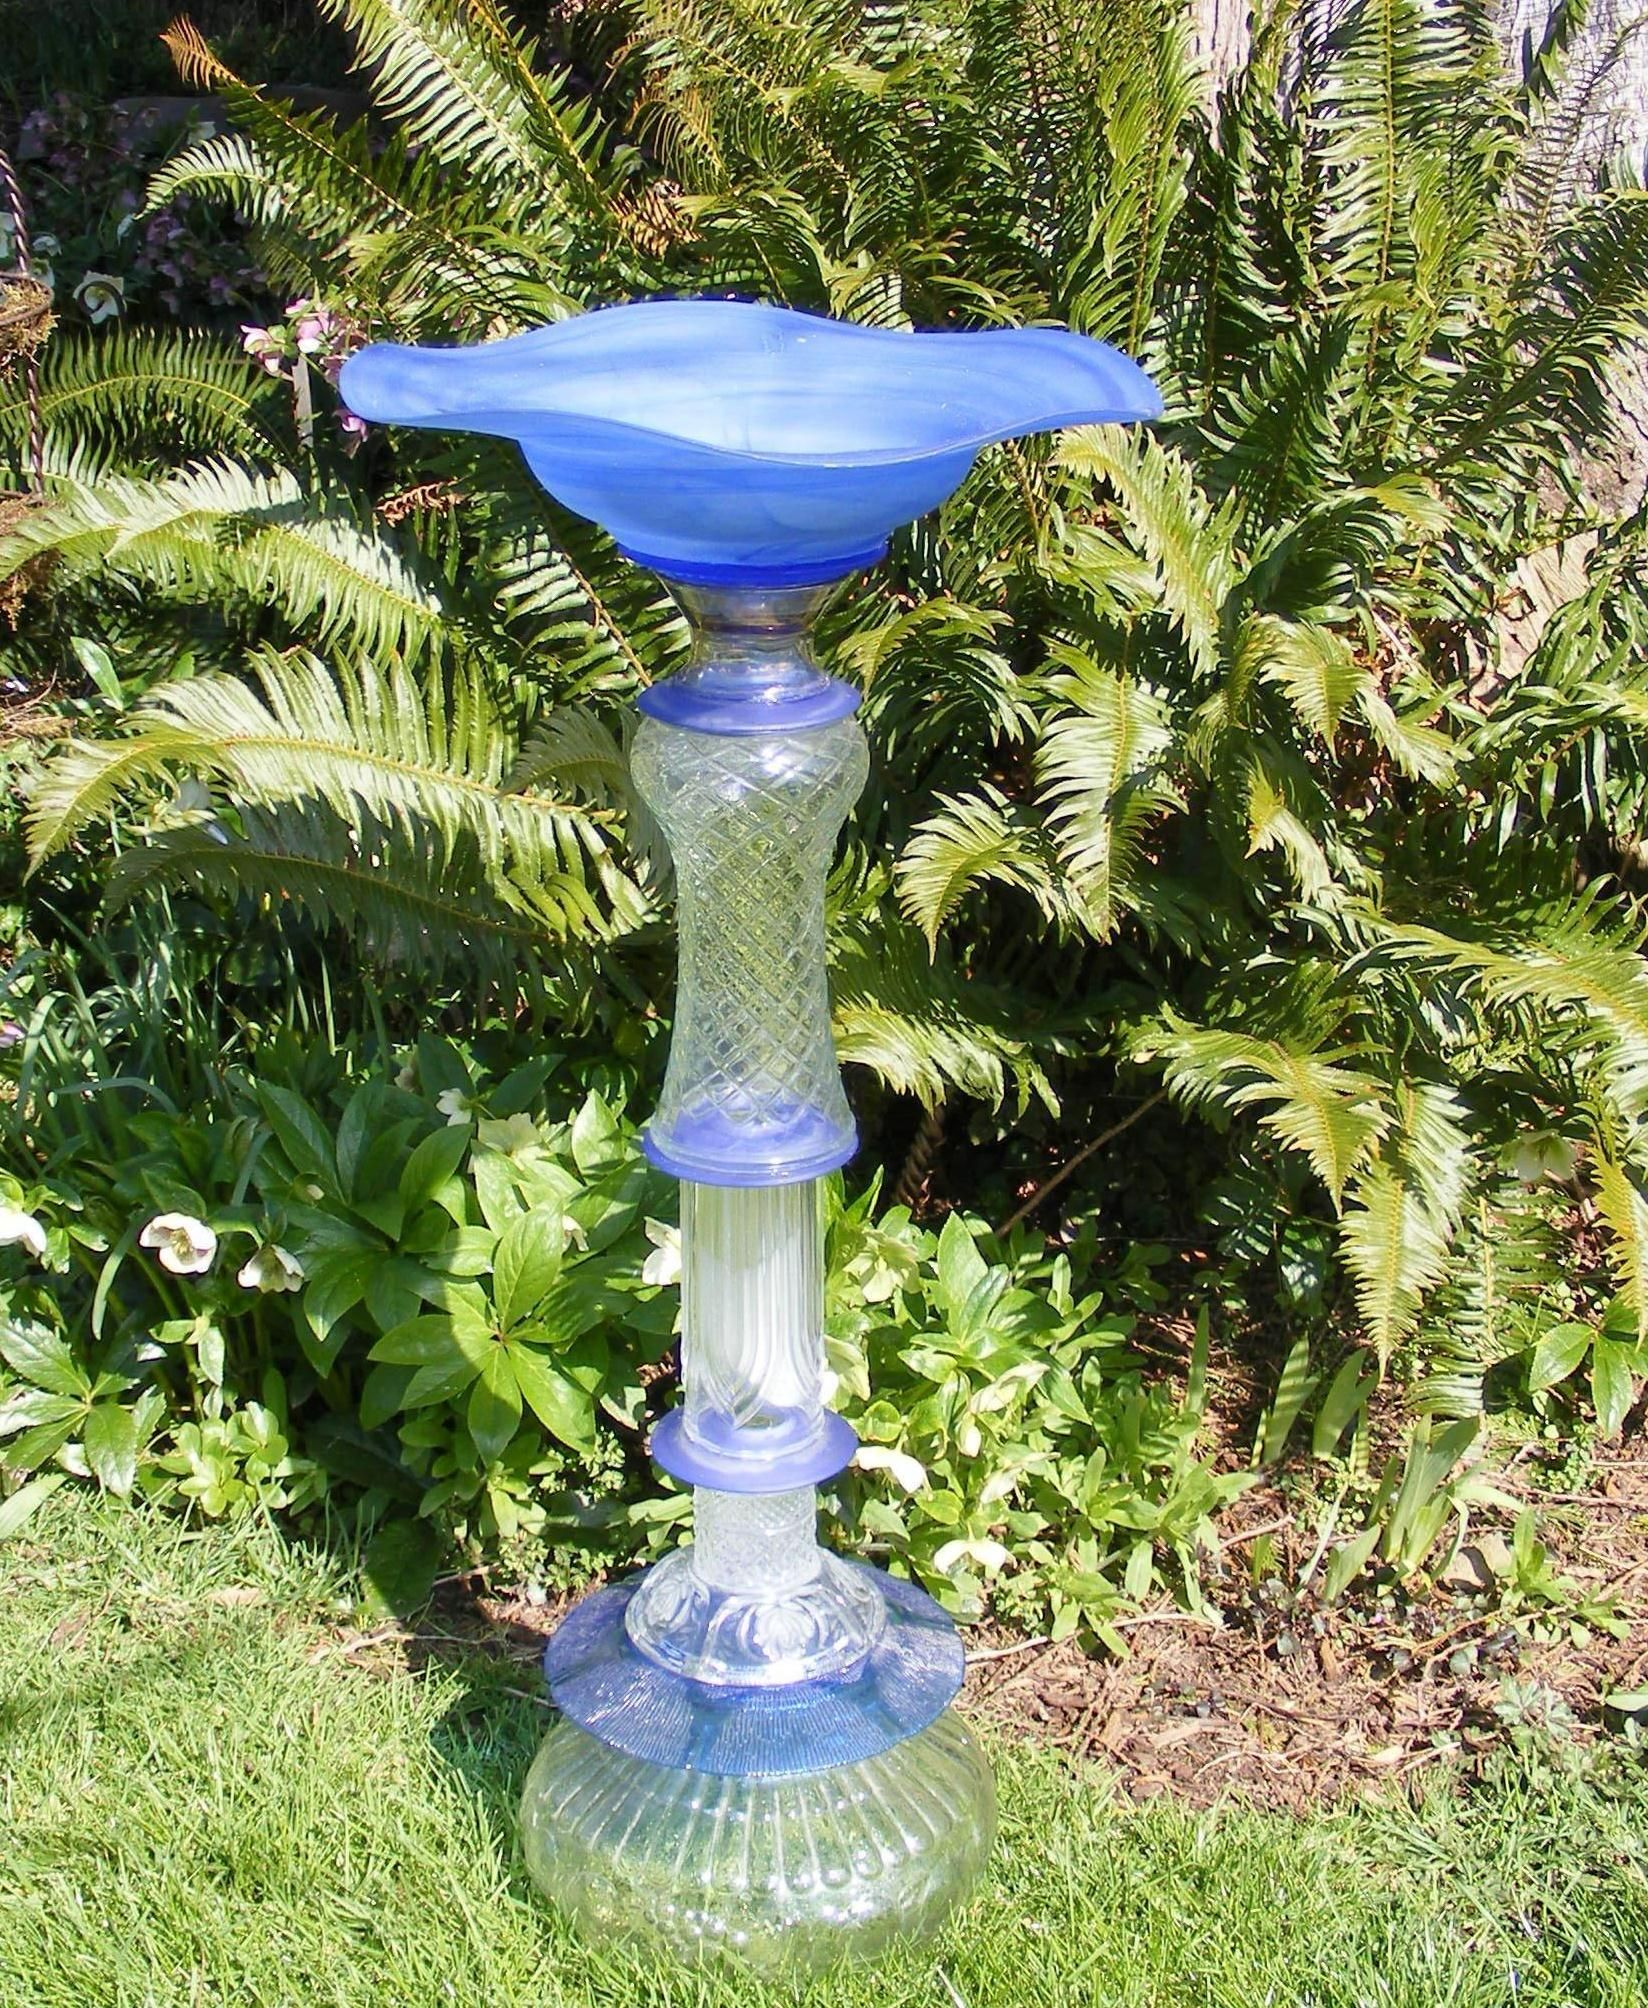 Recycled glass garden art garden pinterest glass for Recycled glass art projects